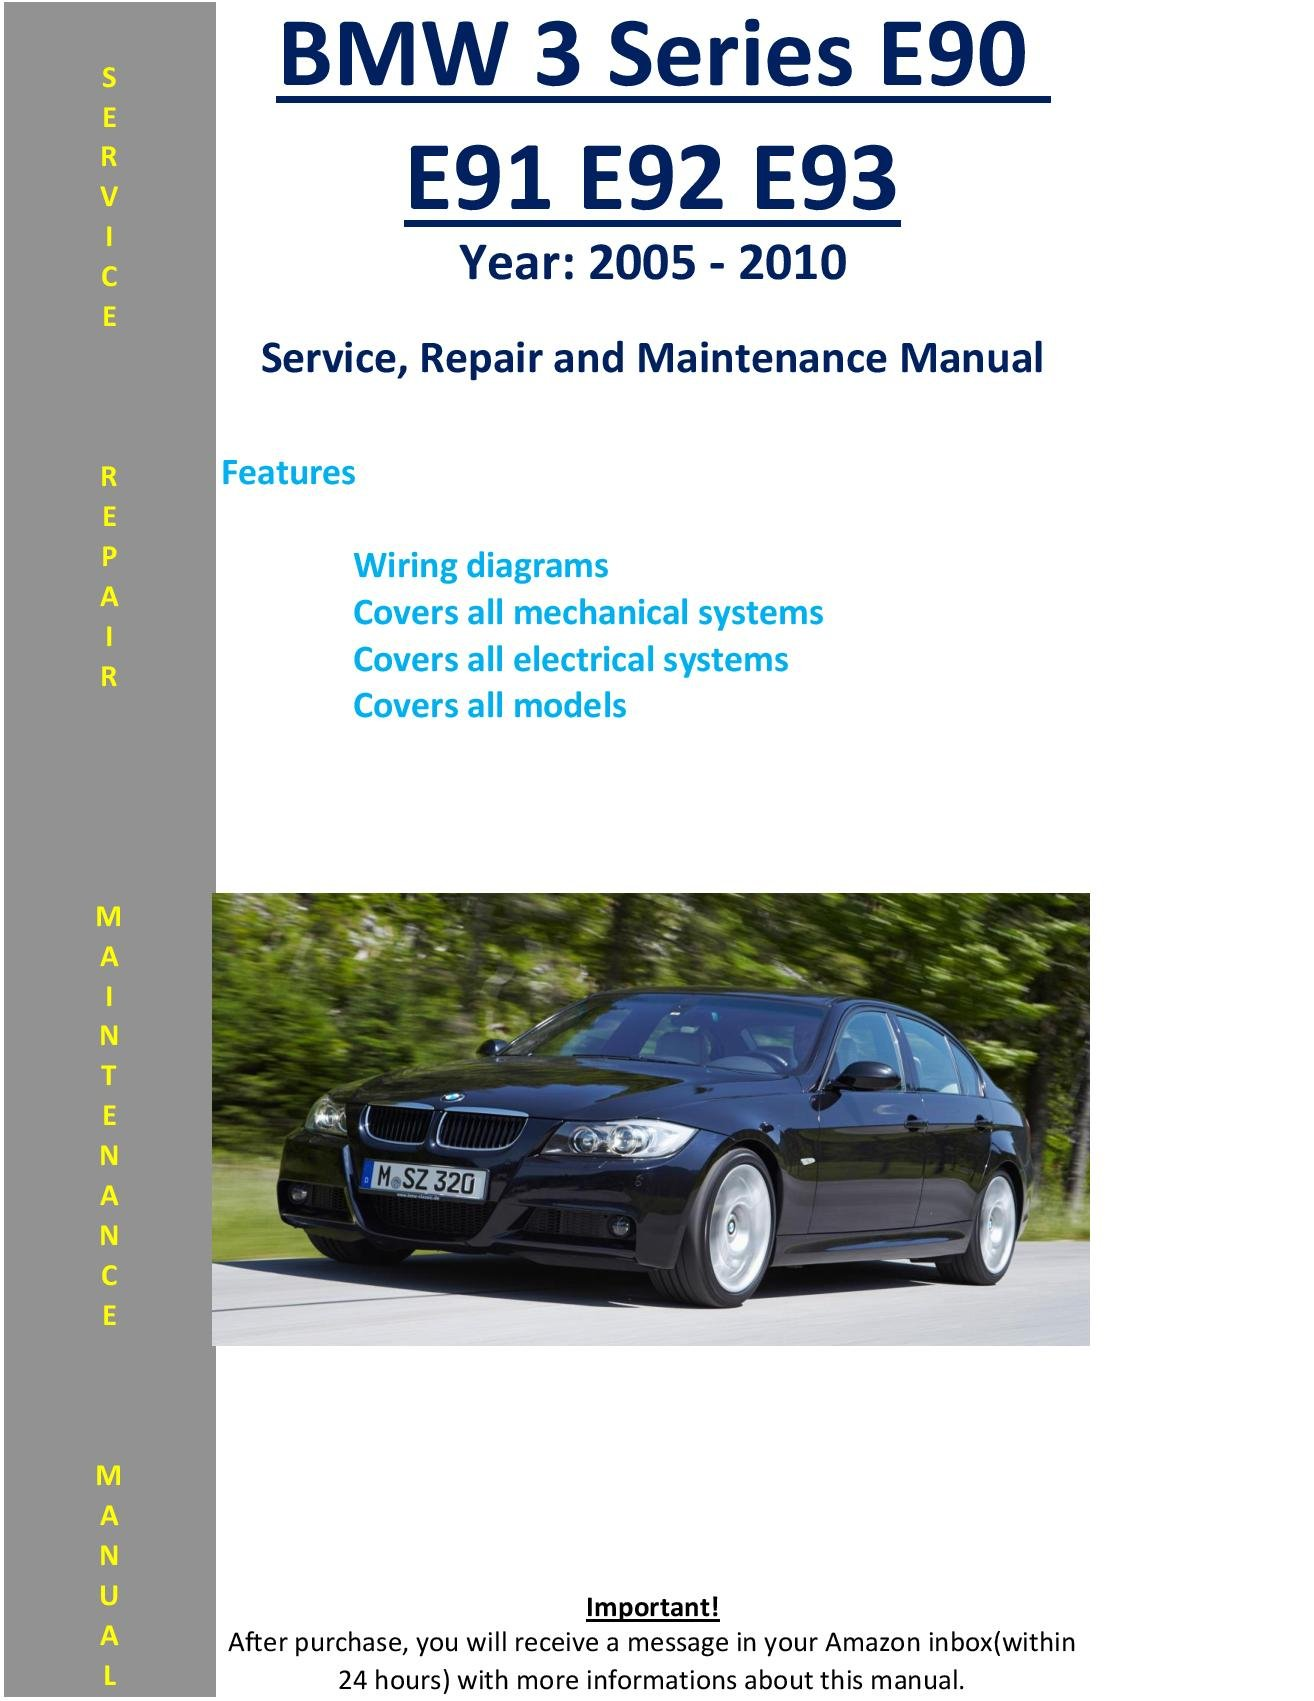 bmw 3 series service manual bentley publishers.pdf